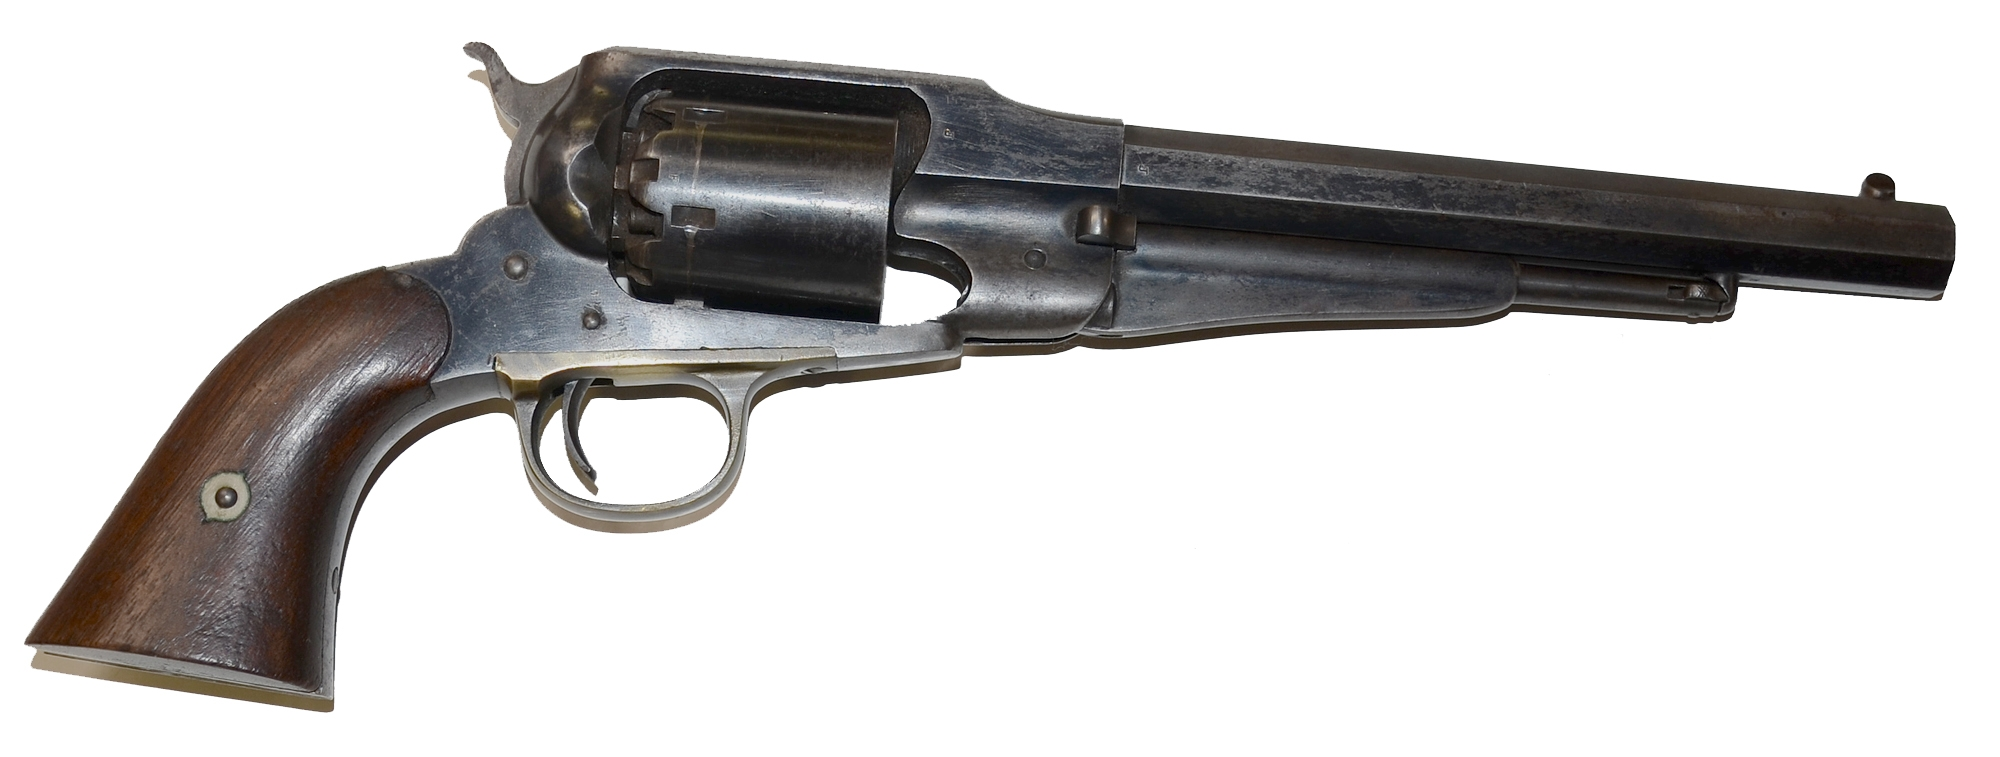 EXCELLENT REMINGTON NEW MODEL ARMY REVOLVER